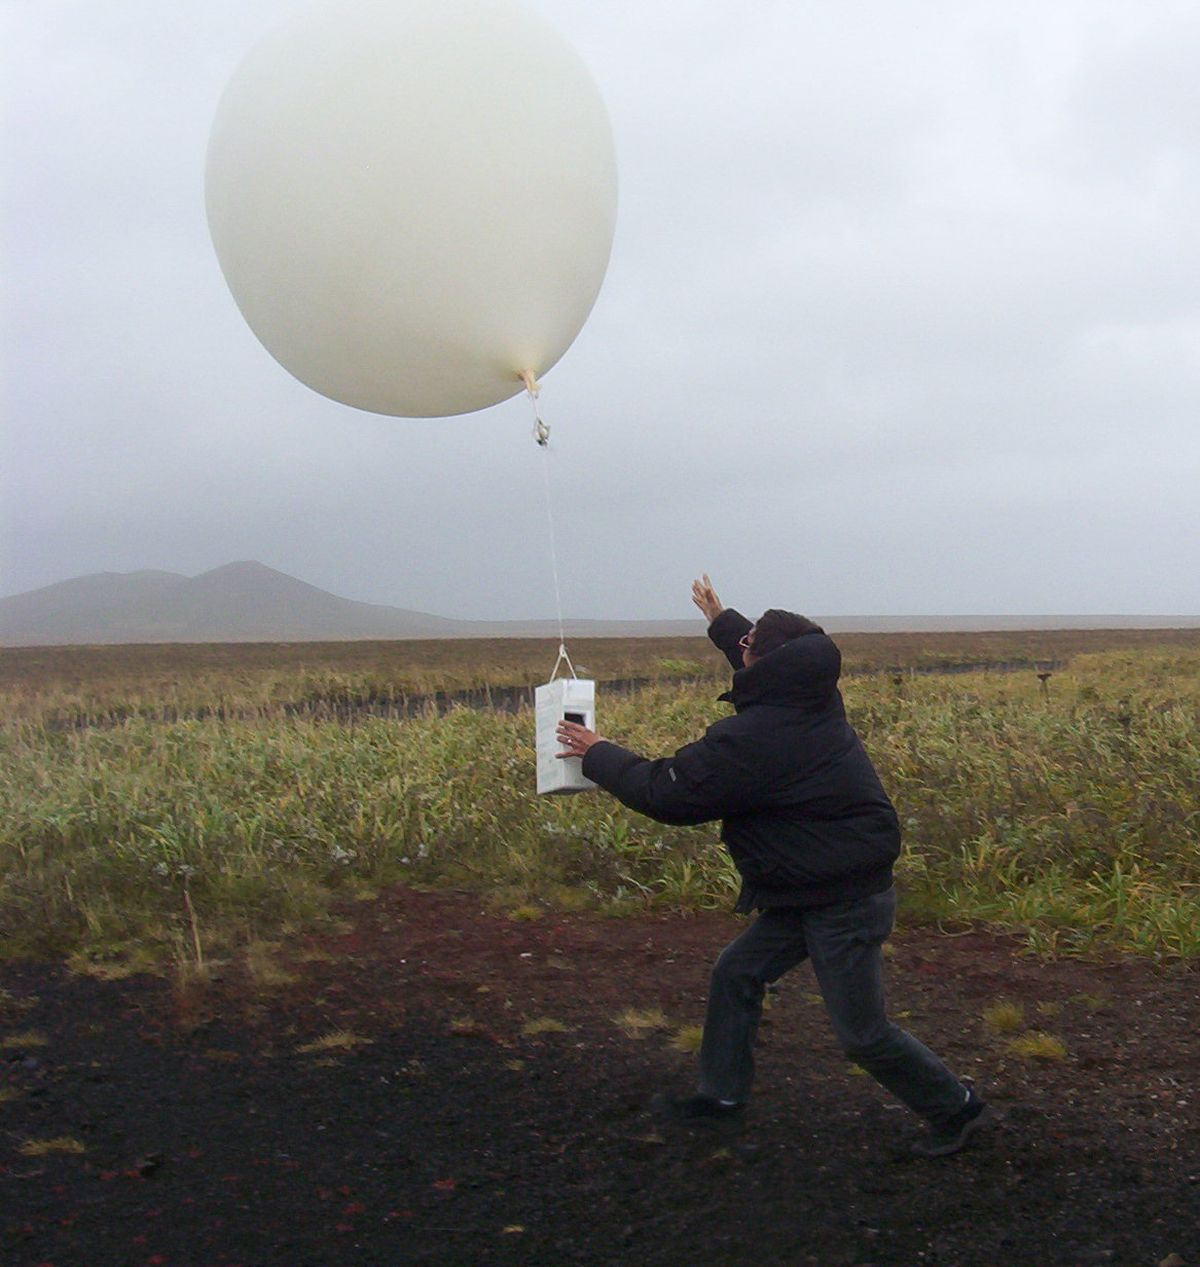 Meteorological technician Willy Tcheripanoff releases a helium-filled weather balloon to gather temperature, humidity, air pressure, wind speed and direction over the Bering Sea in 2004. This balloon rose 110,000 feet before it burst. (Doug O'Harra / ADN archives)